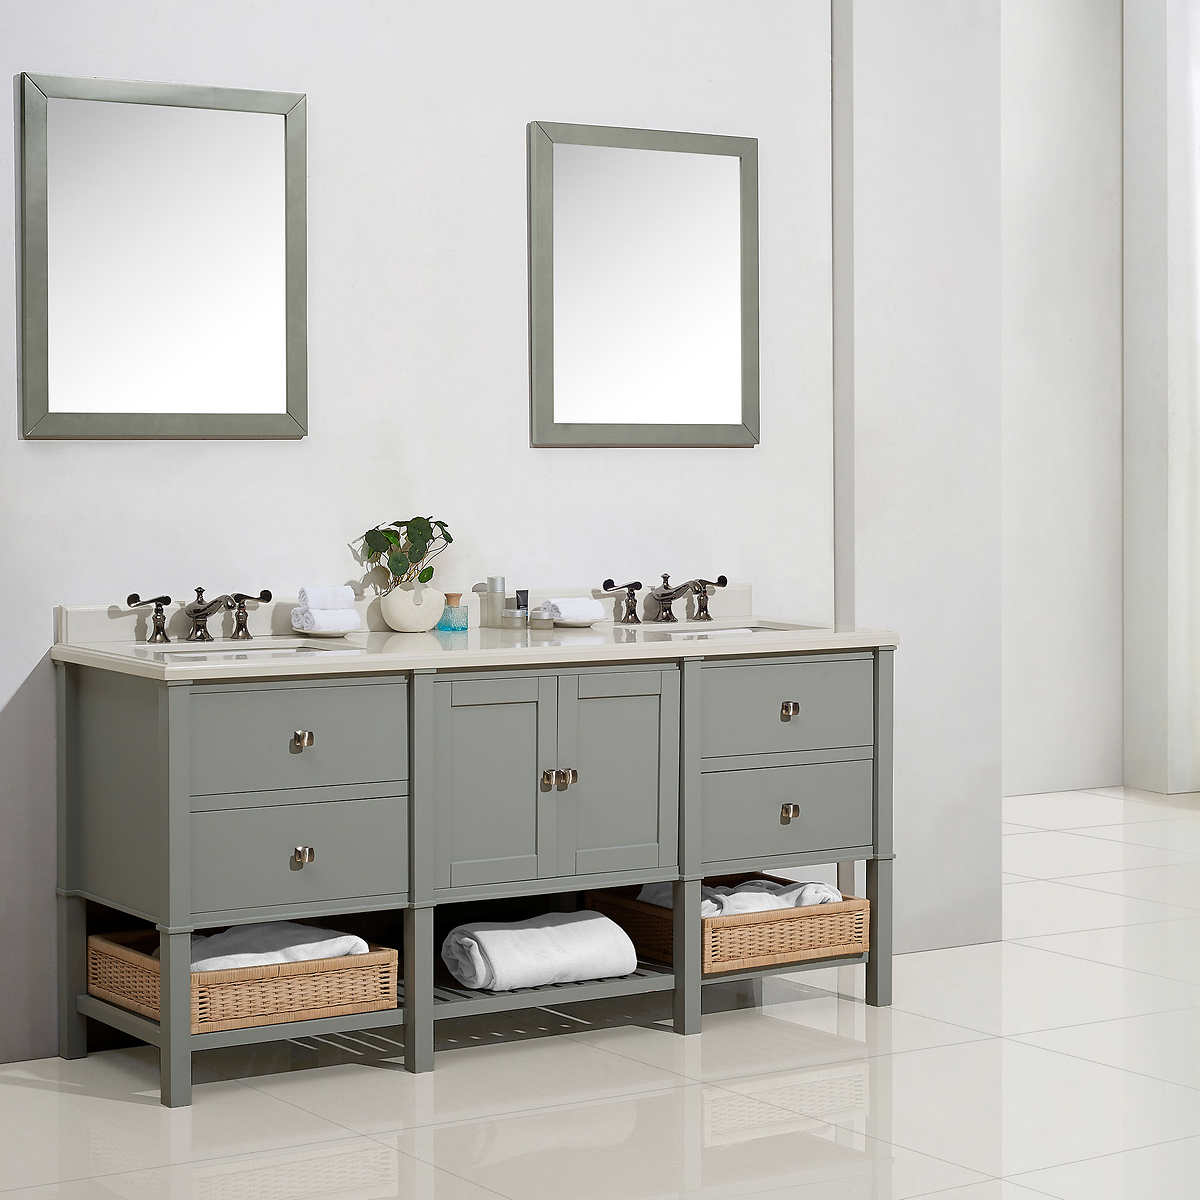 Cool Bathroom Vanities Canada Improve The With Modern Elegant Upper Mirror Cabinet Choose An Option Standard Framed 0